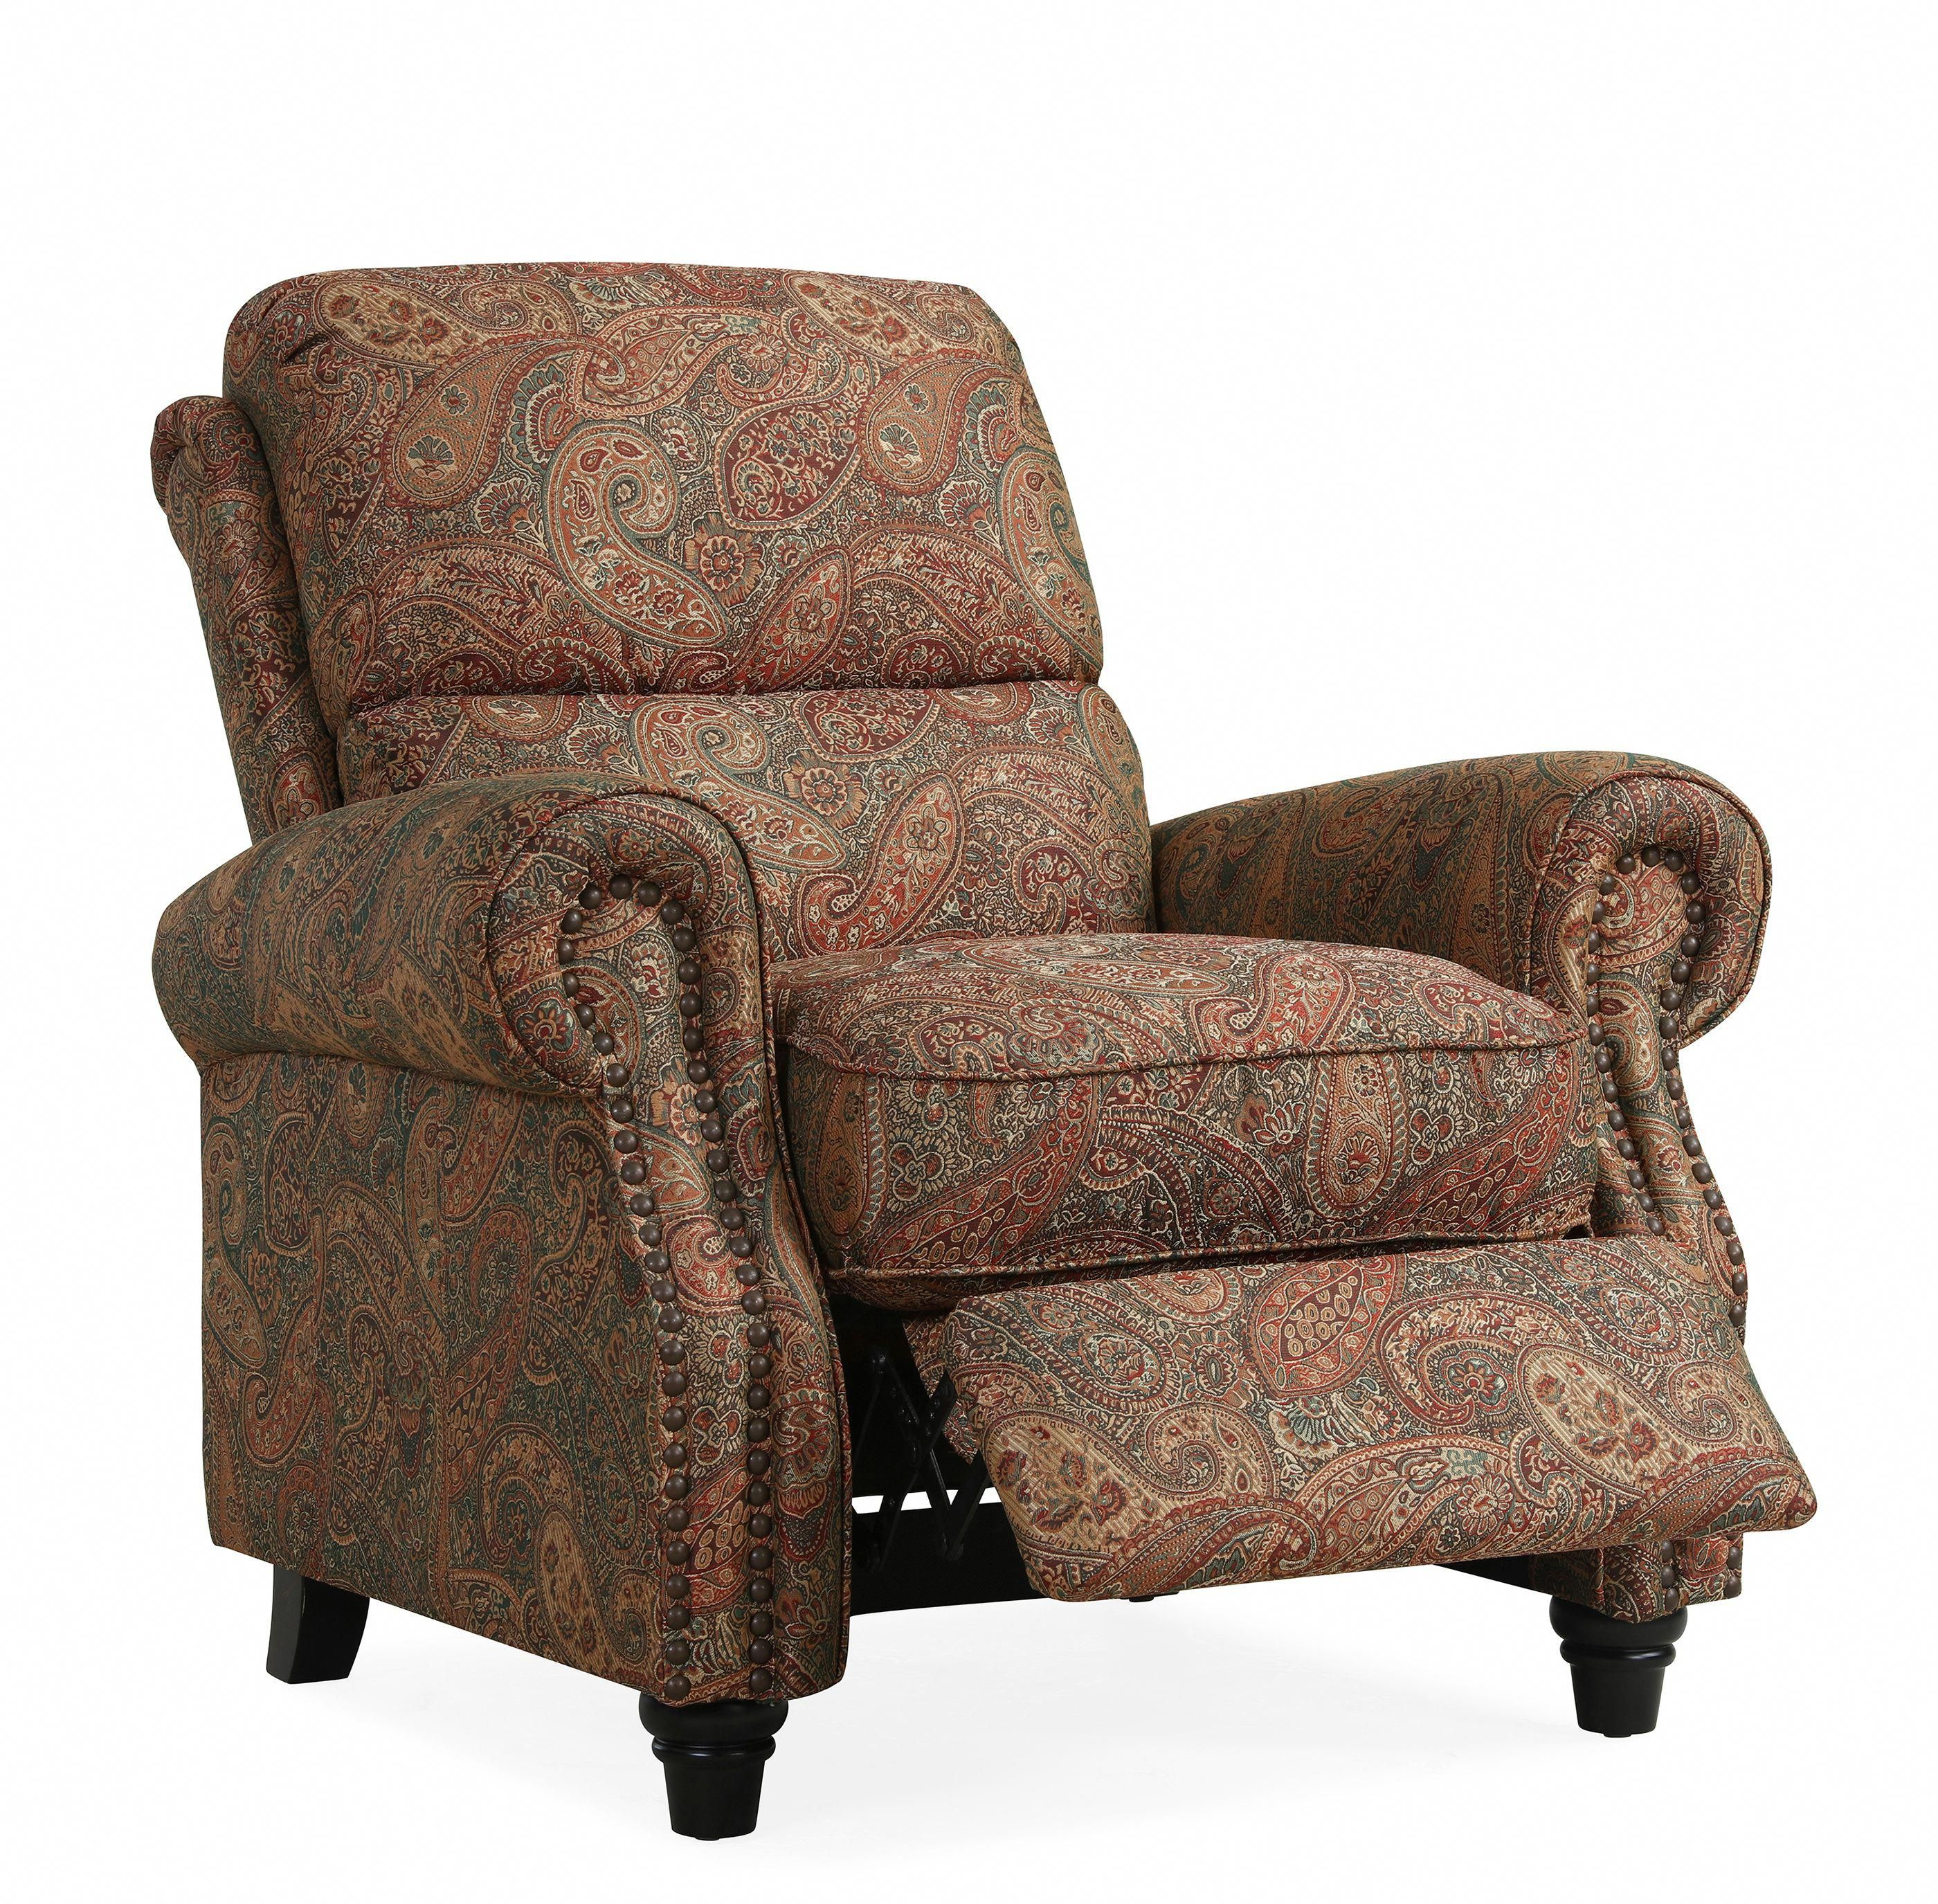 Cari Push Back Recliner Chair in Paisley